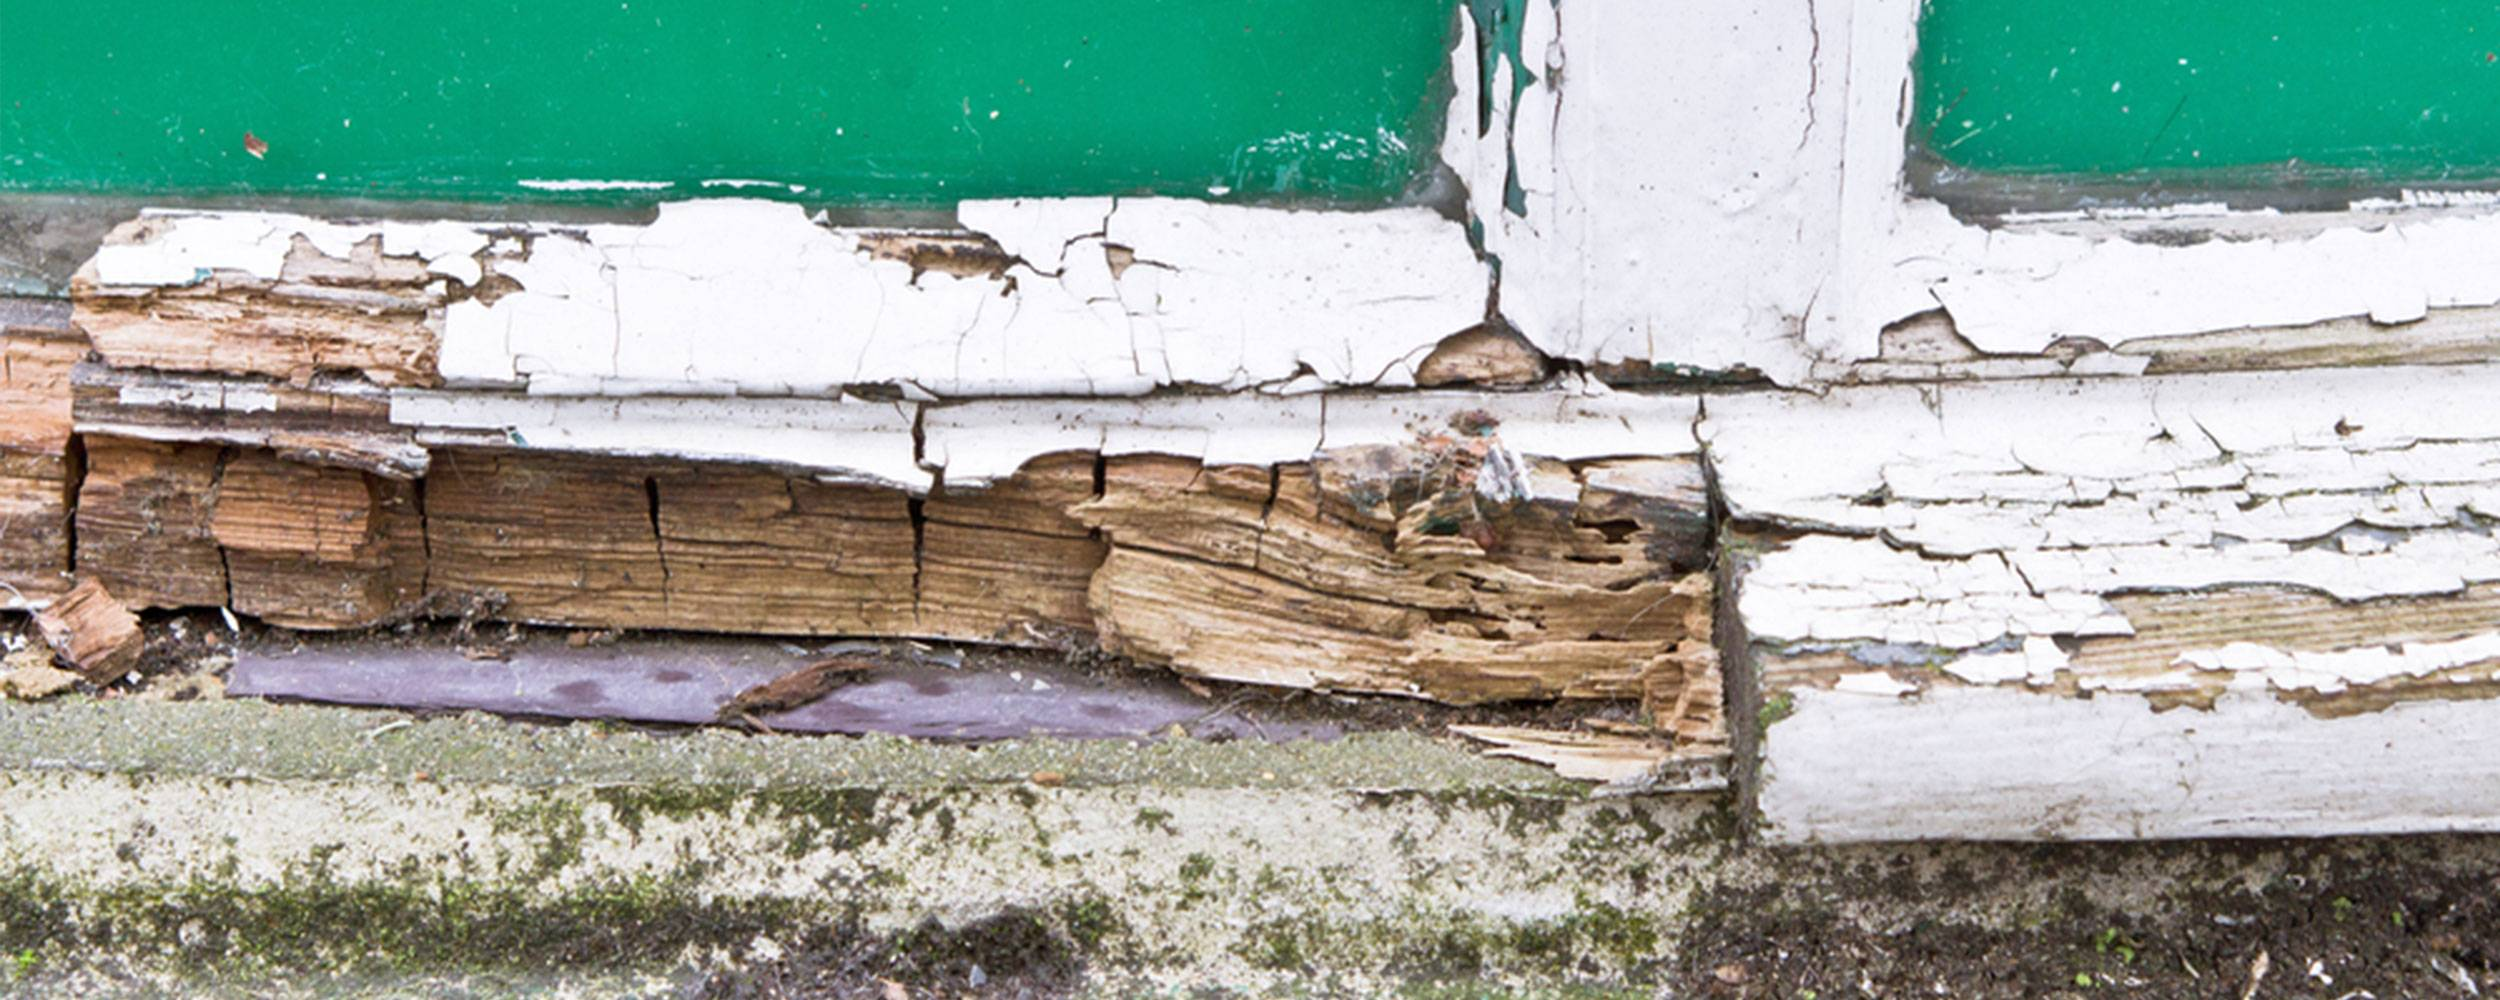 dry rot in wood under an old door